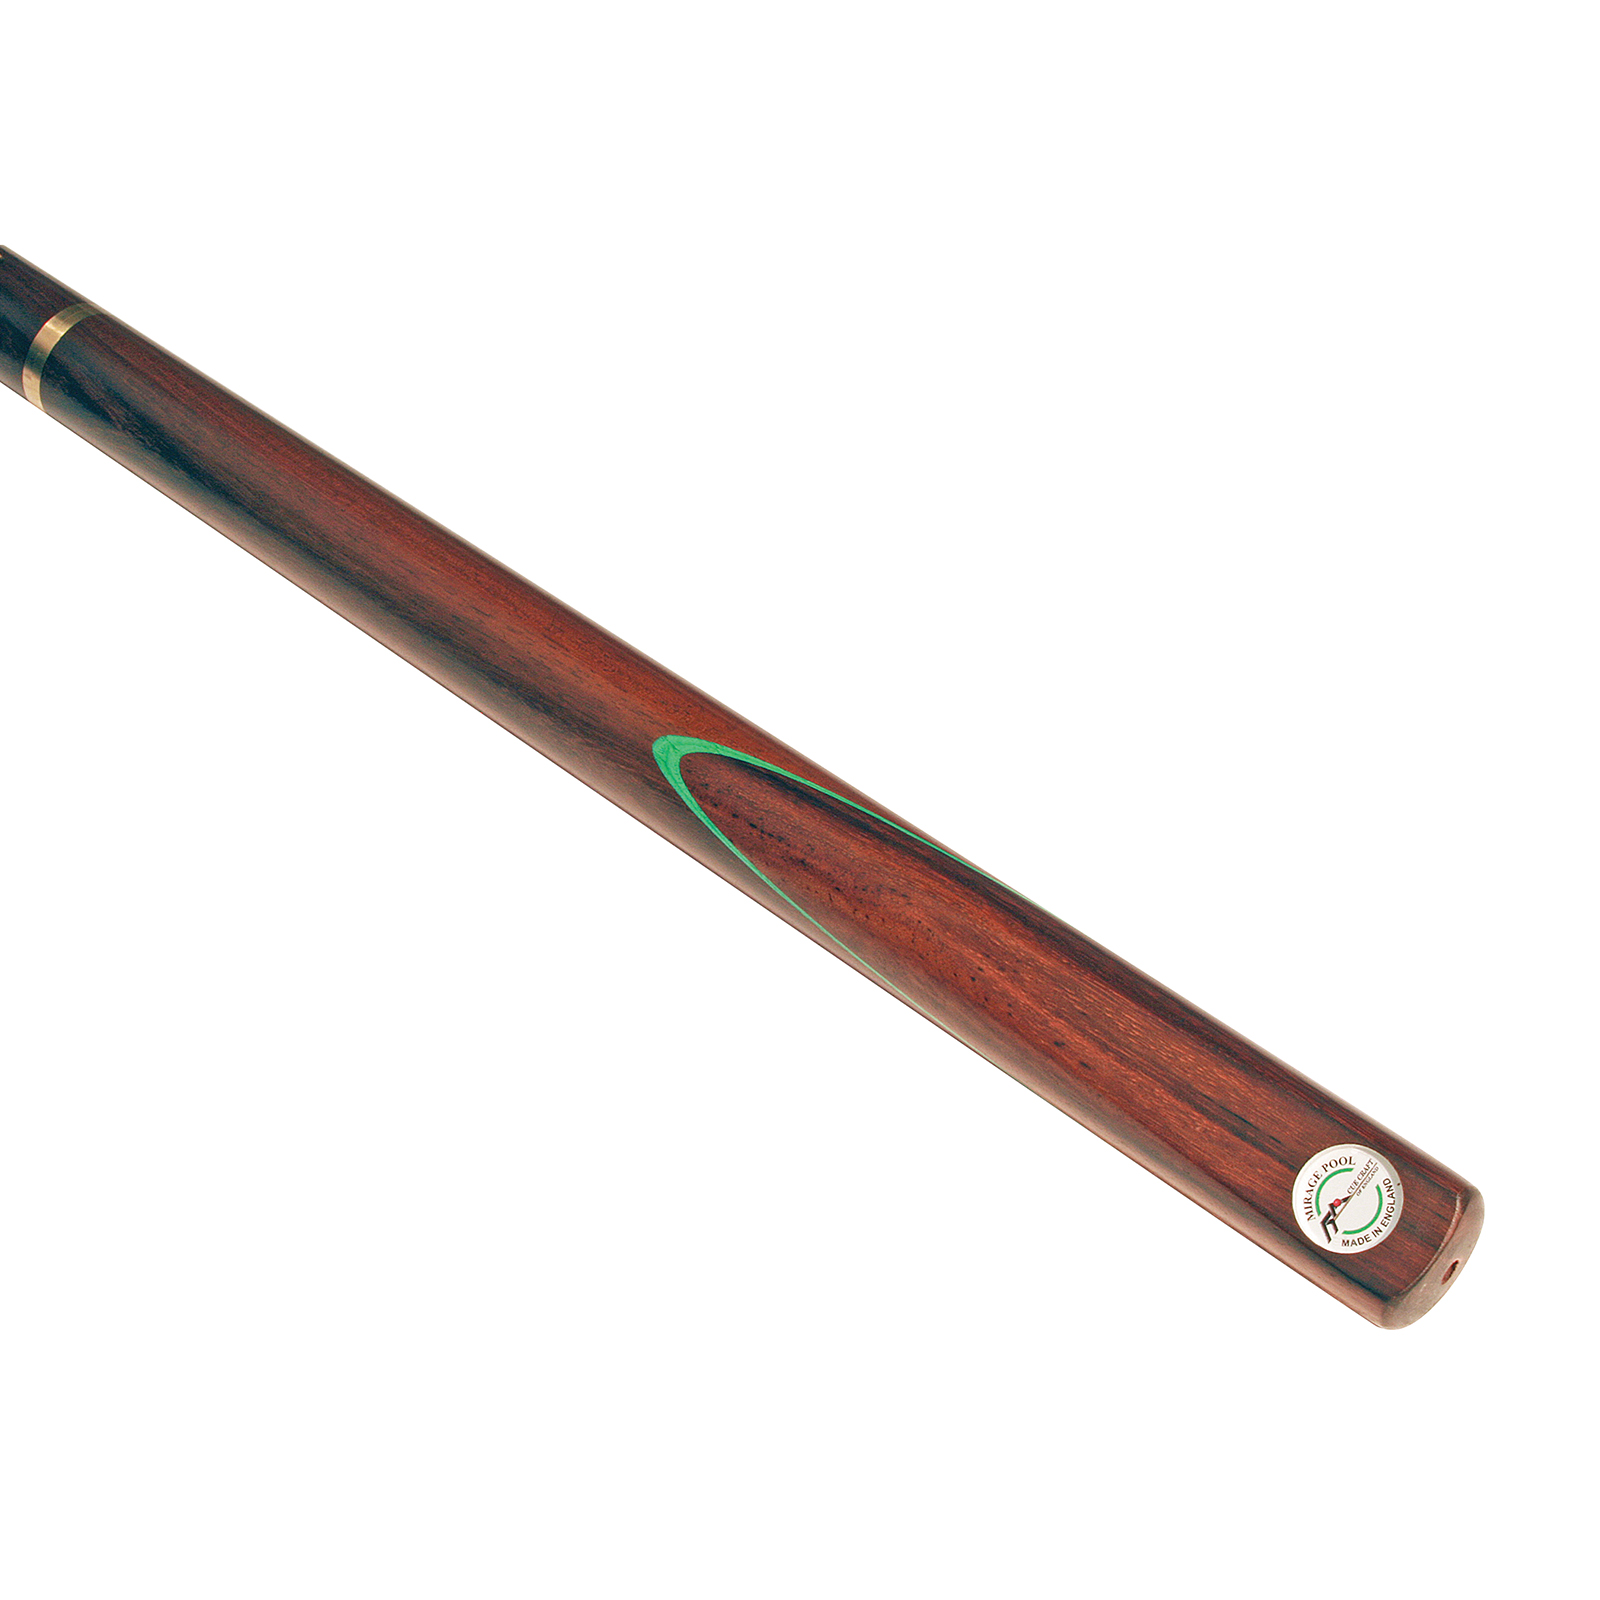 Cue Craft Mirage ¾ Jointed English Pool Cue